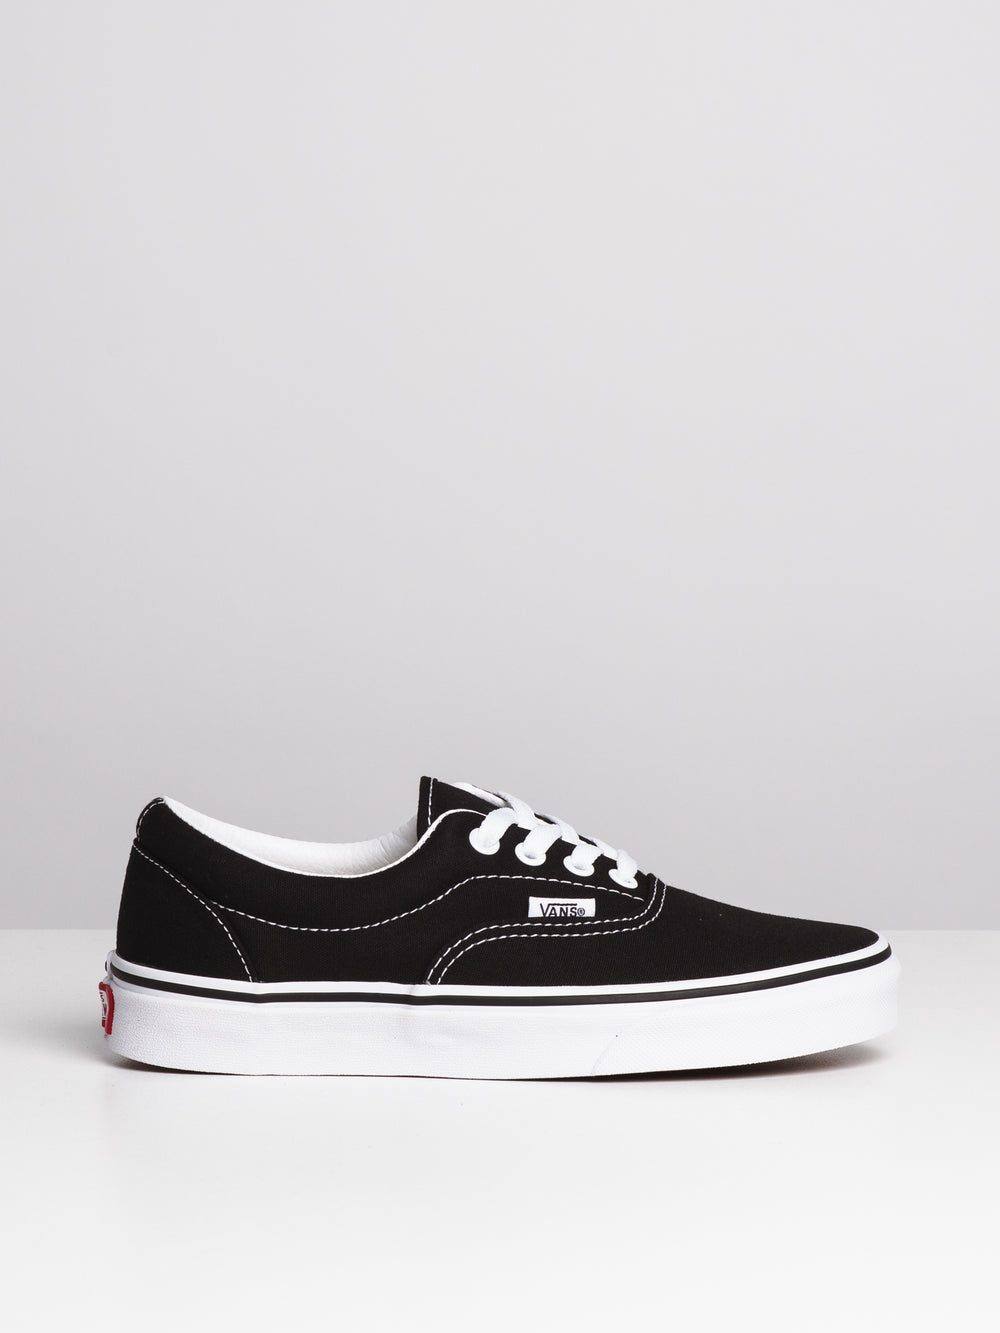 WOMENS ERA - BLACK/WHITE